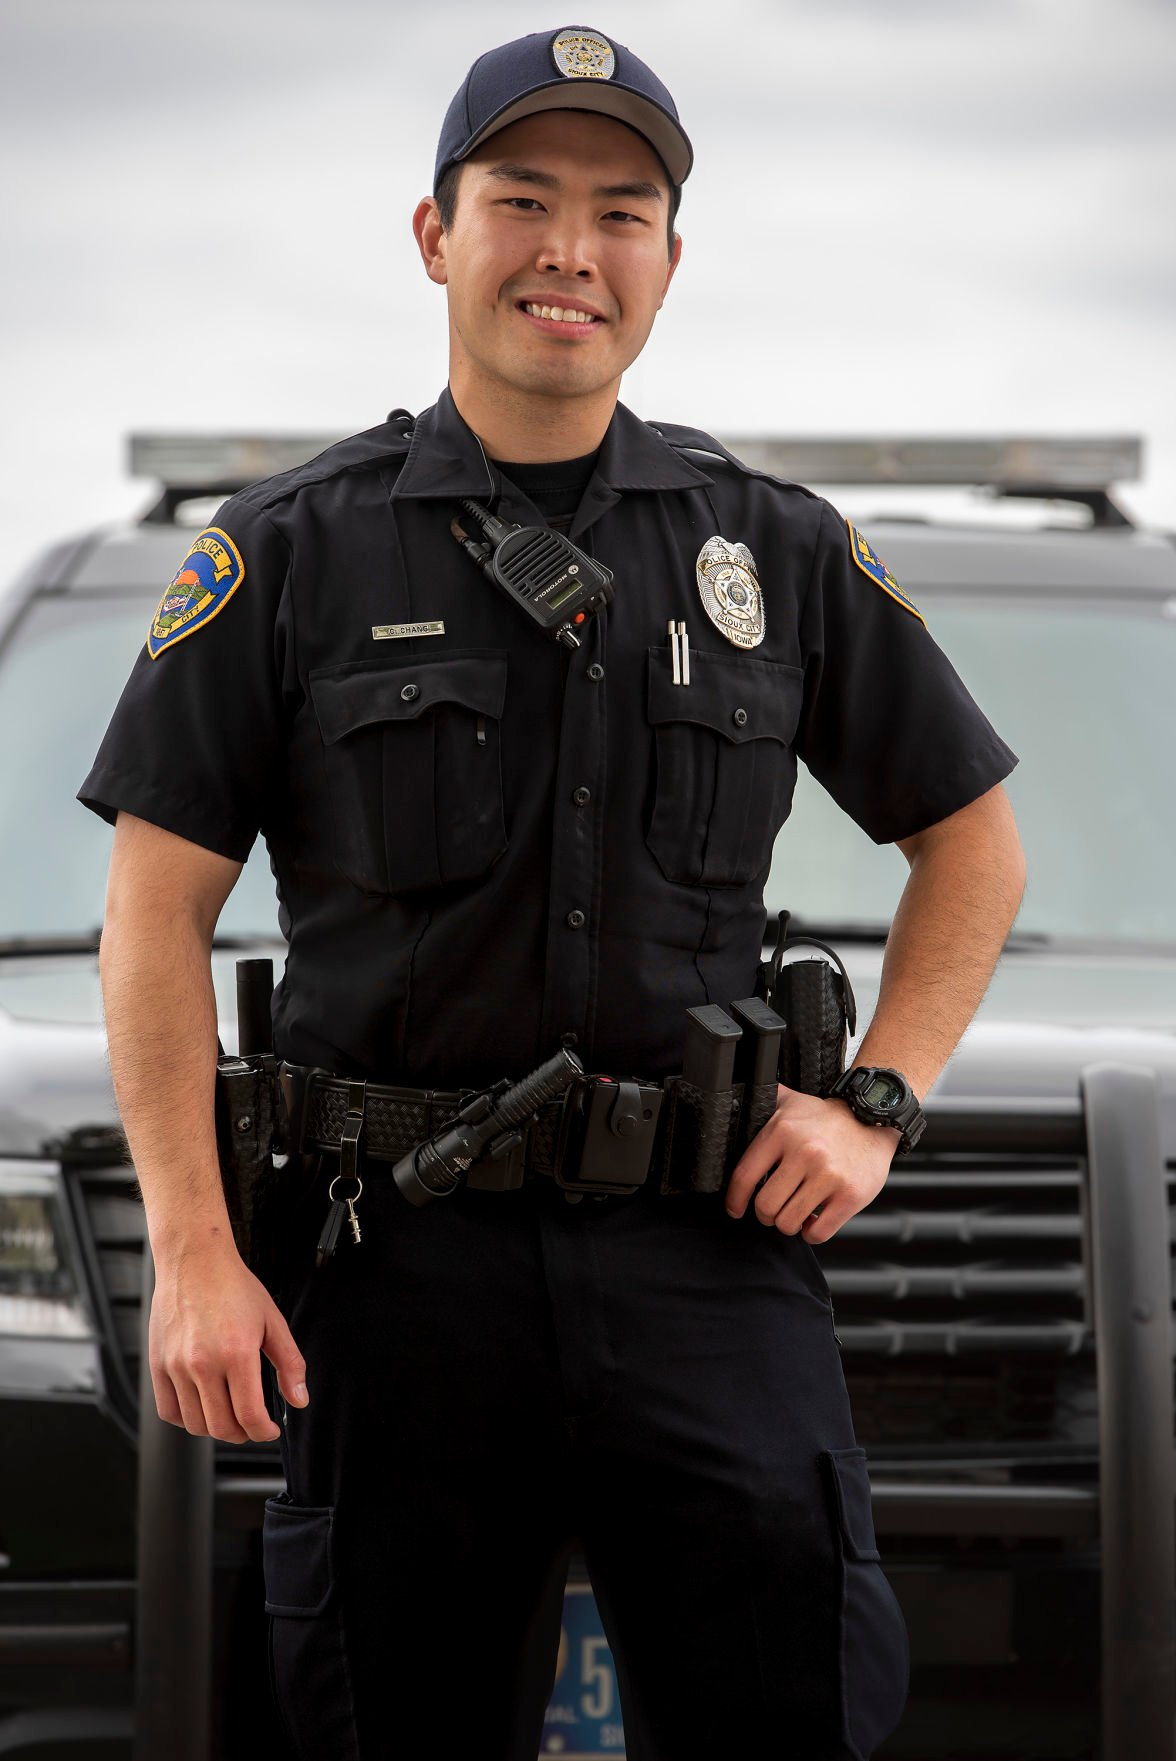 Sioux City Police officer Calvin Chang